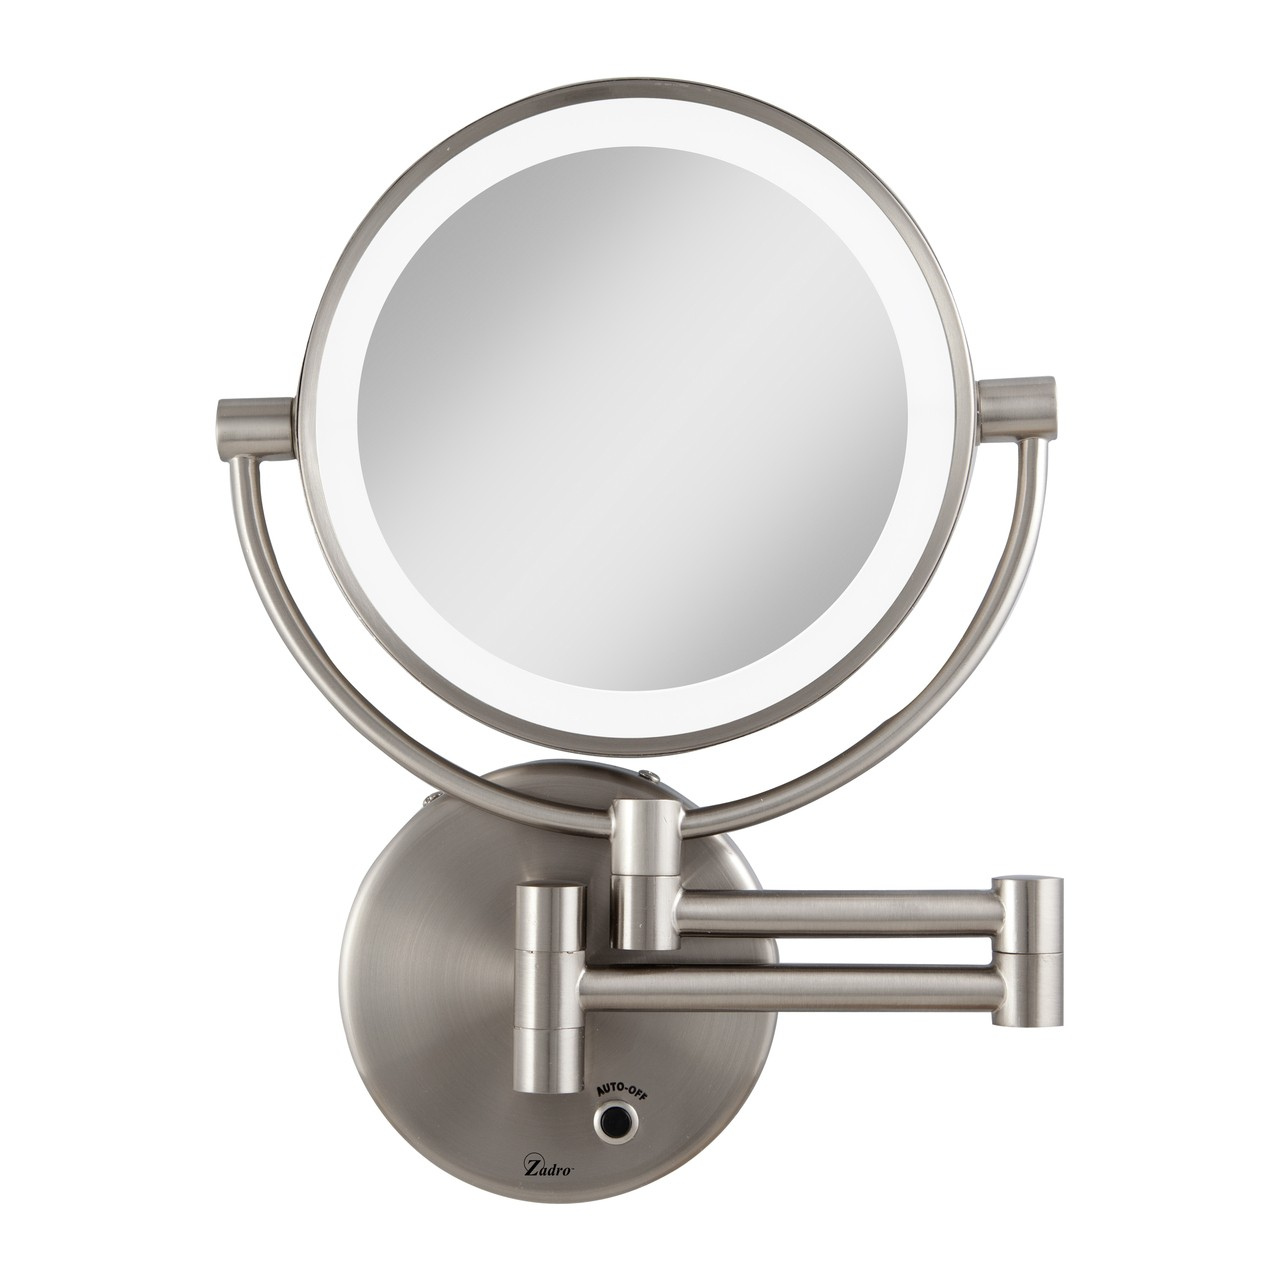 Zadro Cordless Led Lighted Wall Mount Mirror 1x 5x